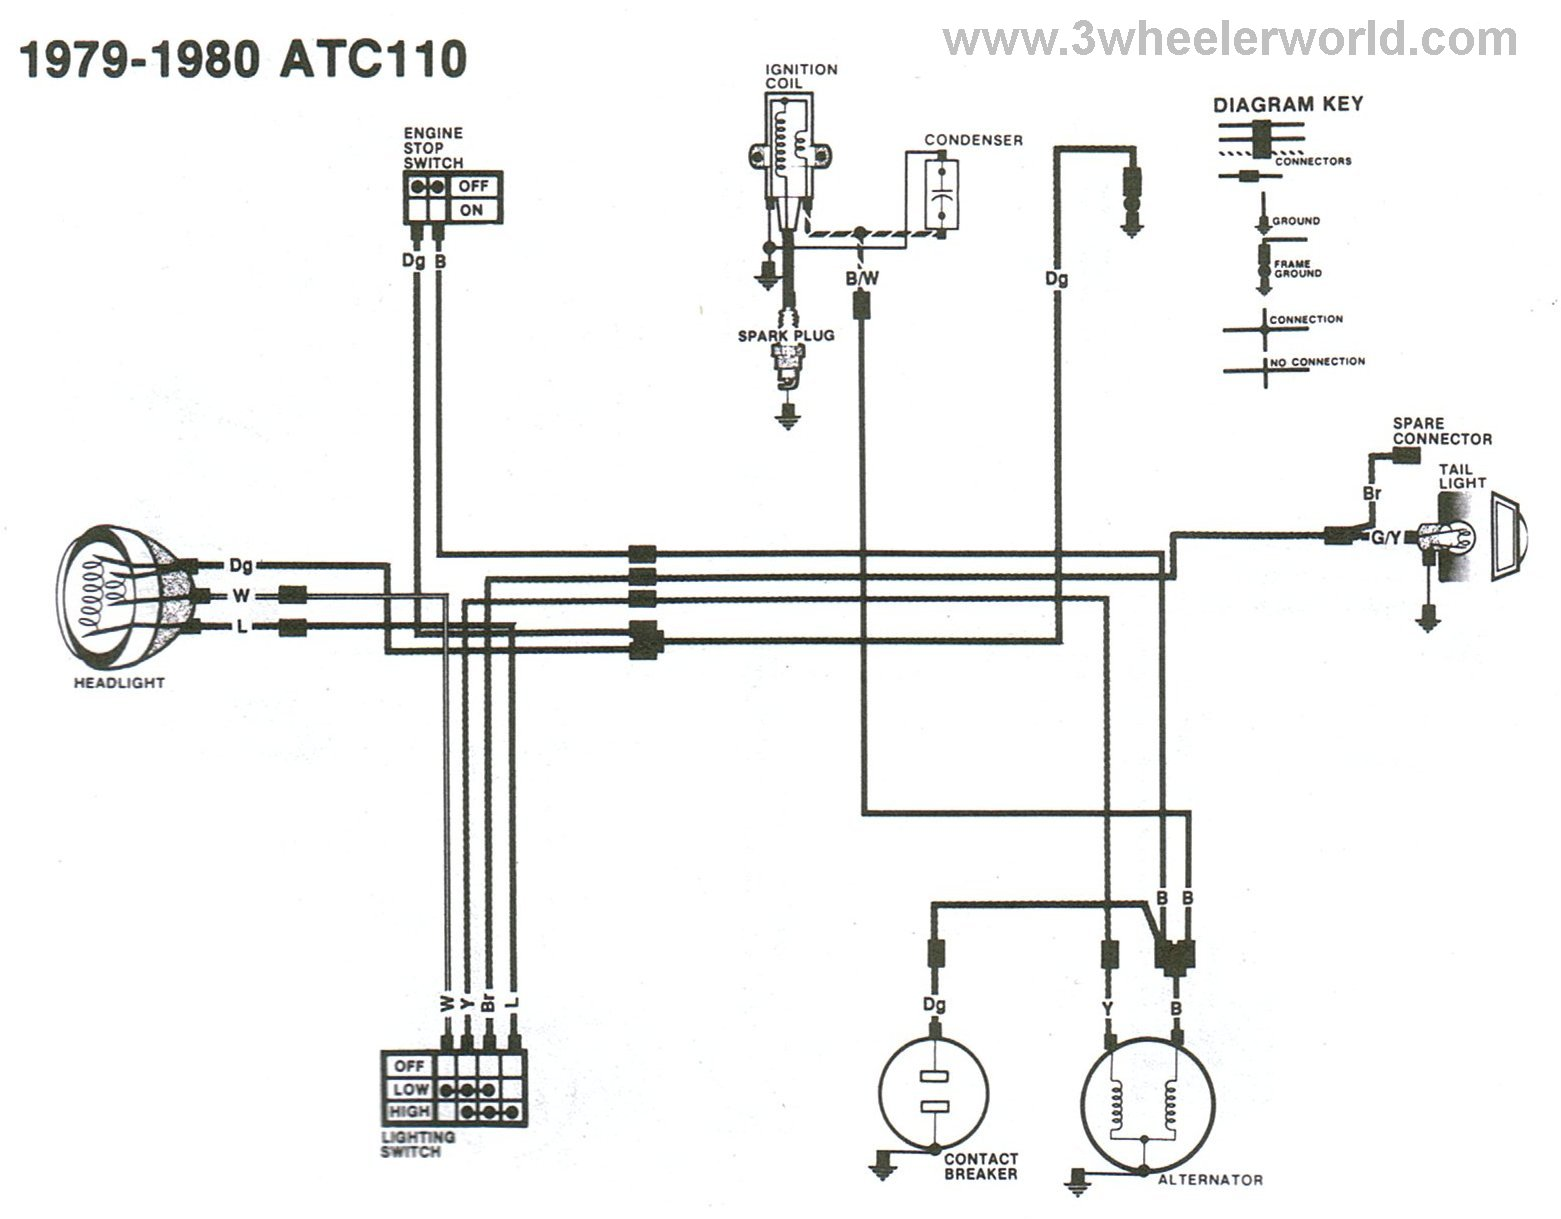 ATC110x79Thru80 3 wheeler world tech help honda wiring diagrams 2000 honda 400ex wiring diagram at edmiracle.co